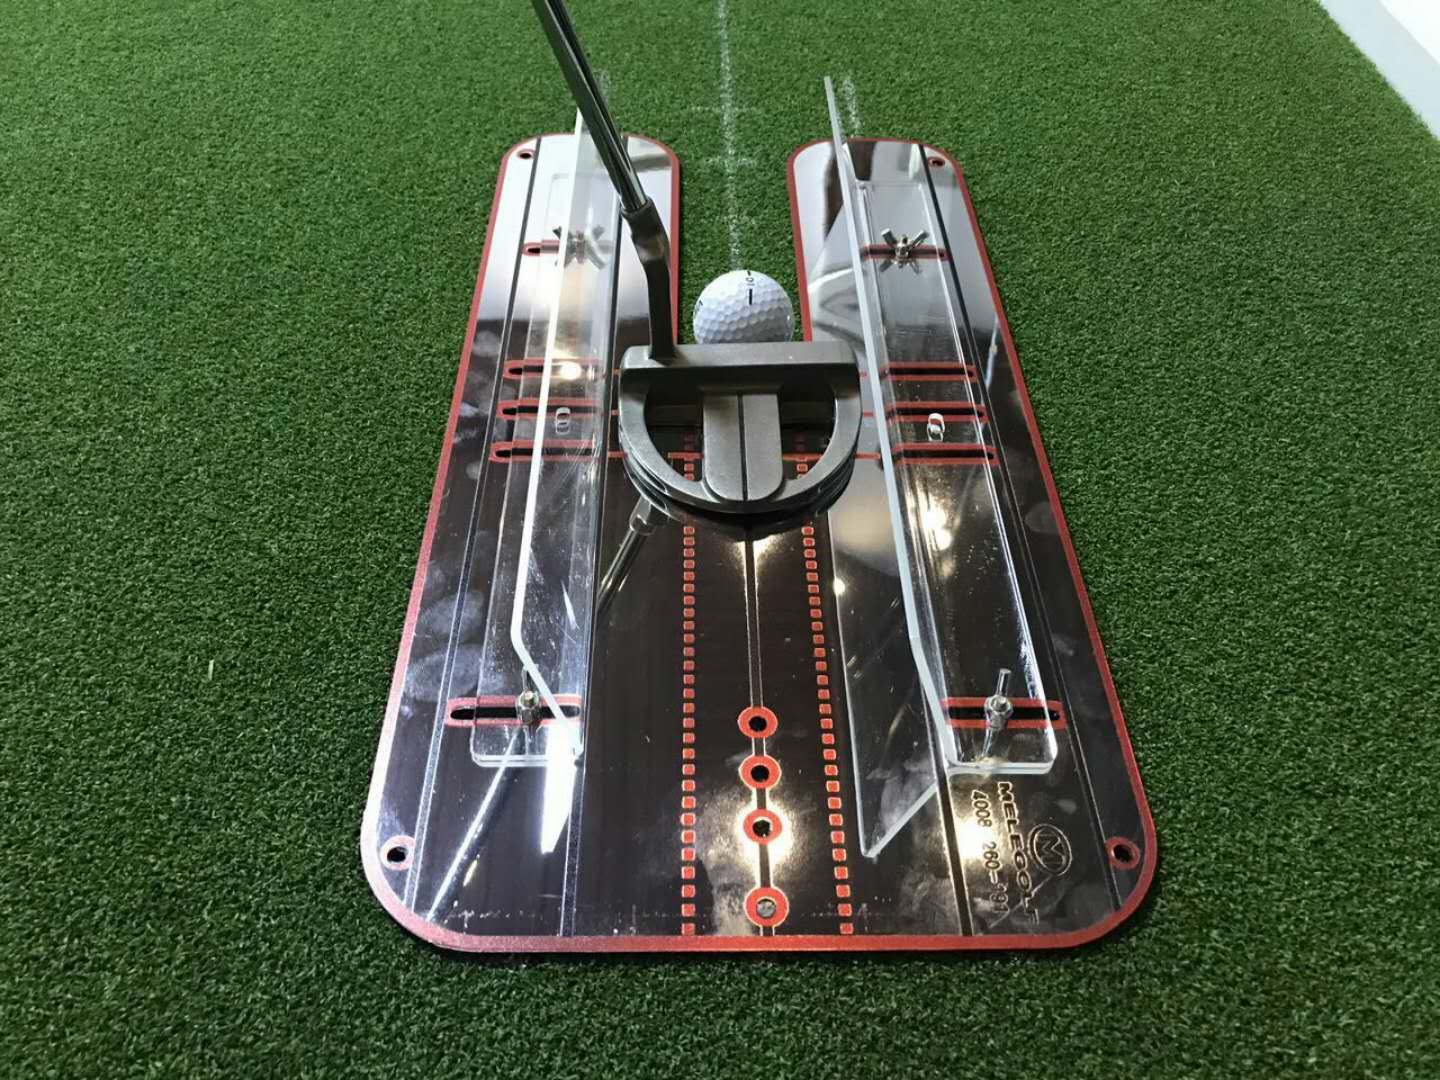 Golf Putting Mirror Alignment Training Aid Swing Trainer Eye Line Golf Practice Putting Mirror free shipping golf putting mat mini golf putting trainer with automatic ball return indoor artificial grass carpet